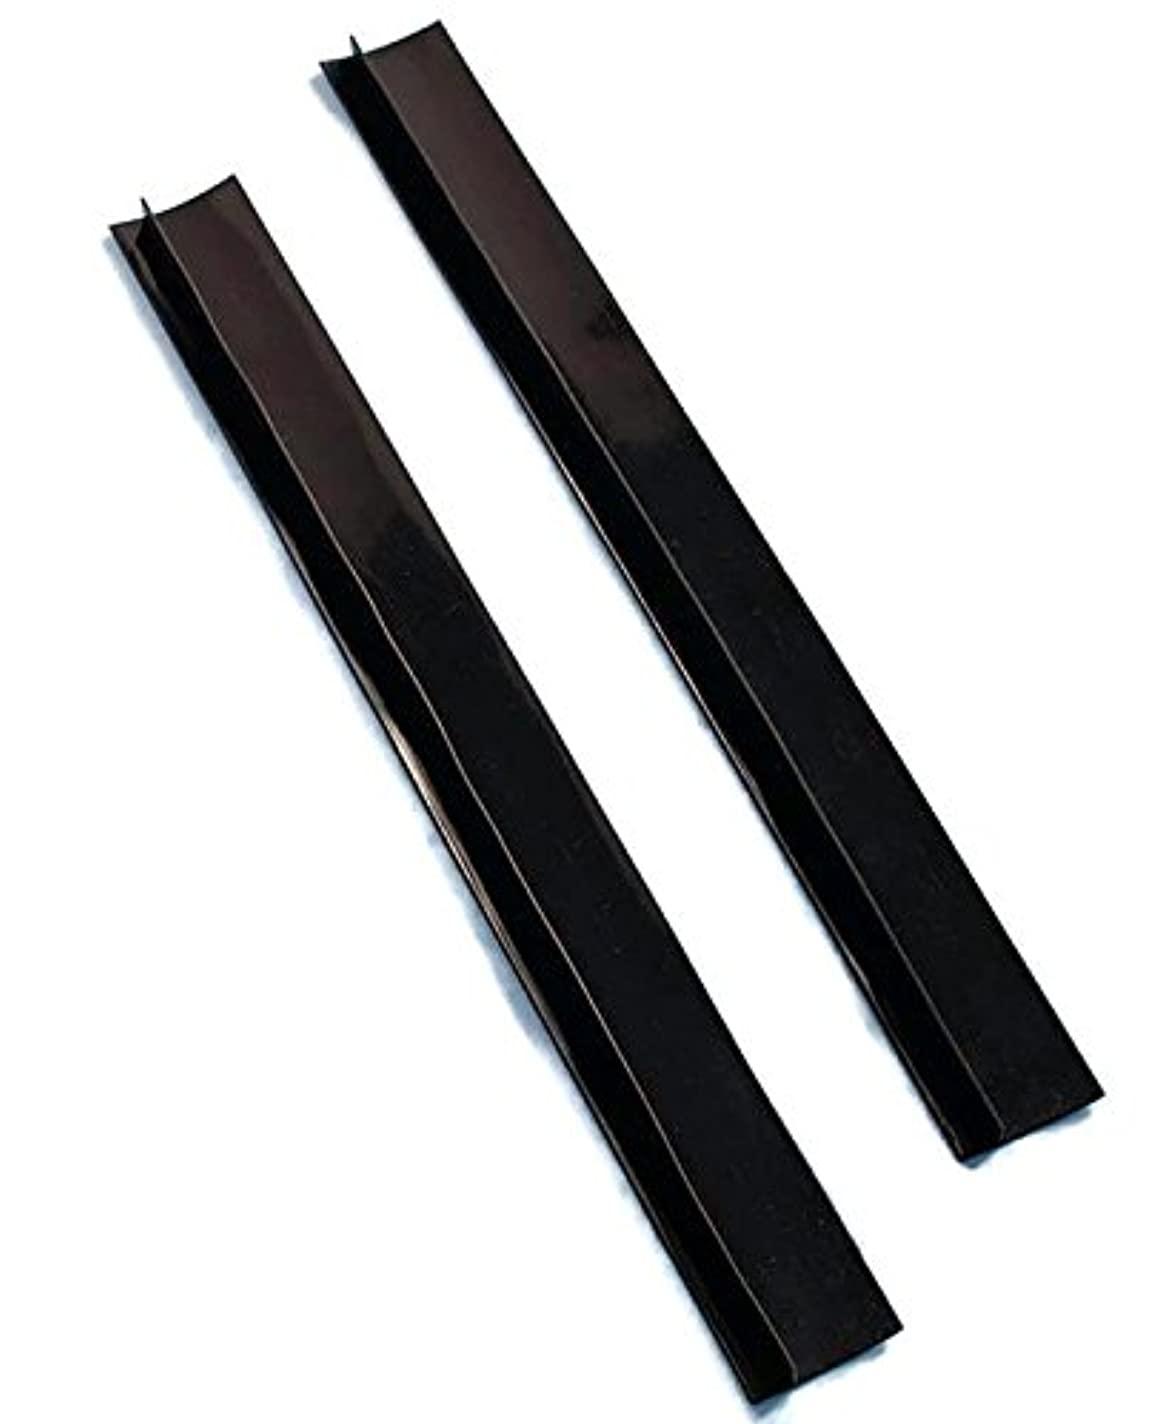 愛するピストル消すSet of 2 Black Silicone Counter Gap Covers by LTD Commodities